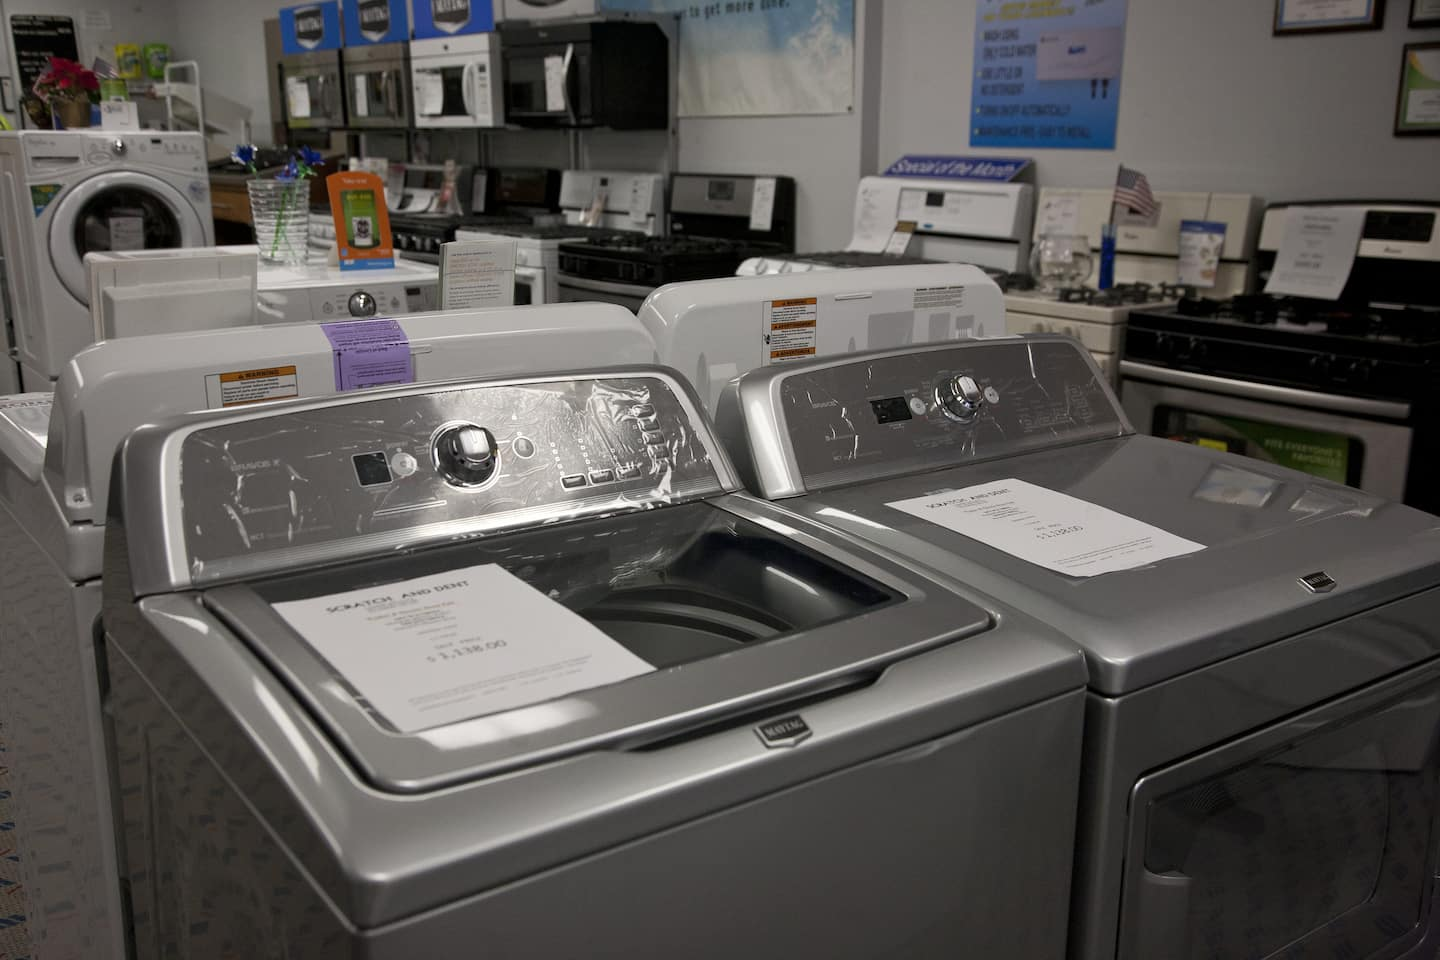 Uncategorized 2nd Hand Kitchen Appliances should i buy a used or new washing machine angies list